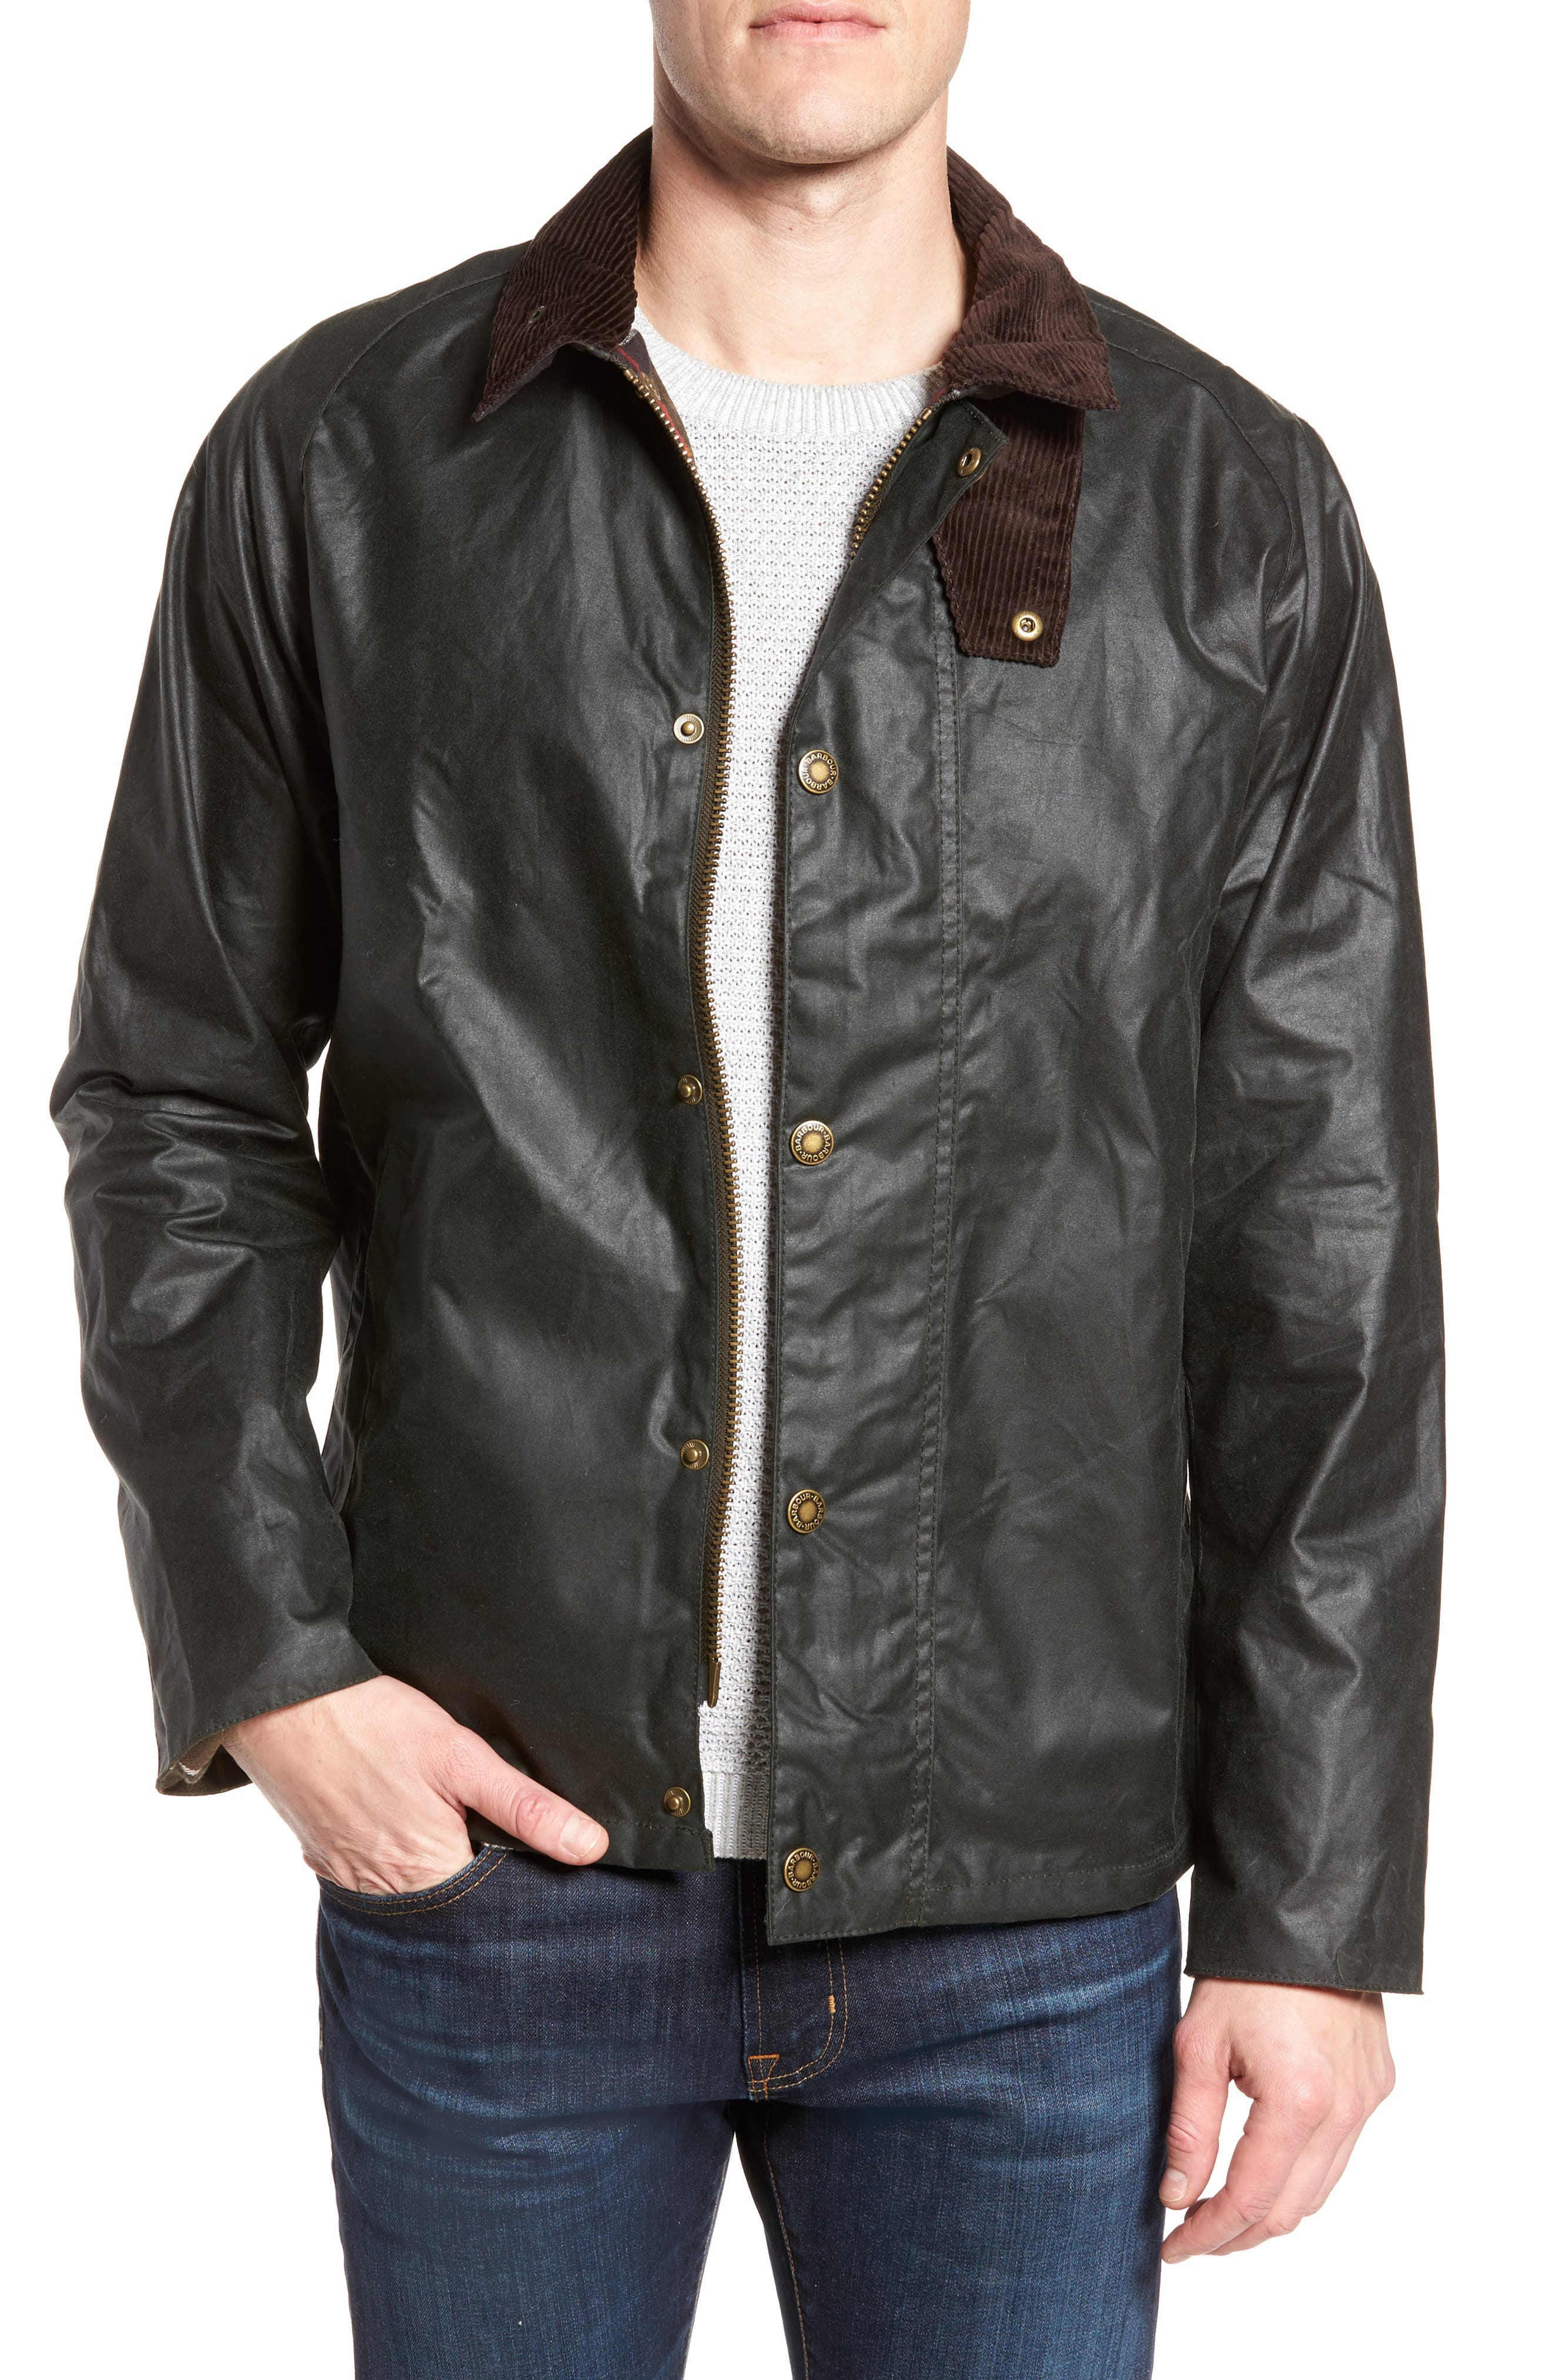 Barbour Heskin Waxed Cotton Jacket, Green